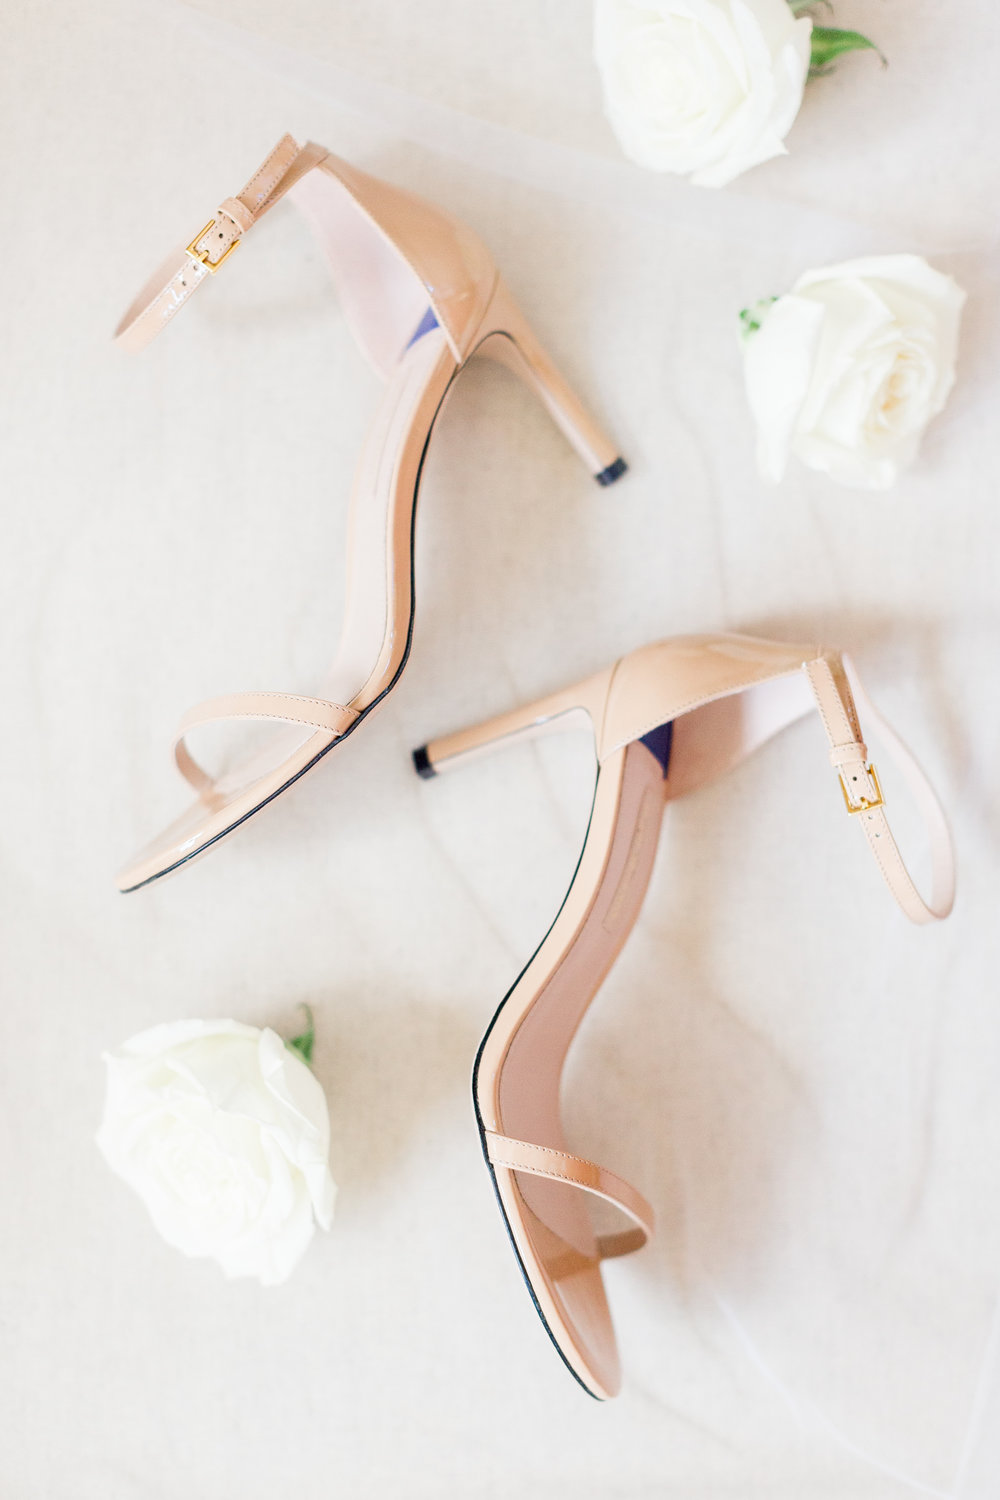 luxury-wedding-details-photographed-by-Northern-California-wedding-photographer(46 of).jpg